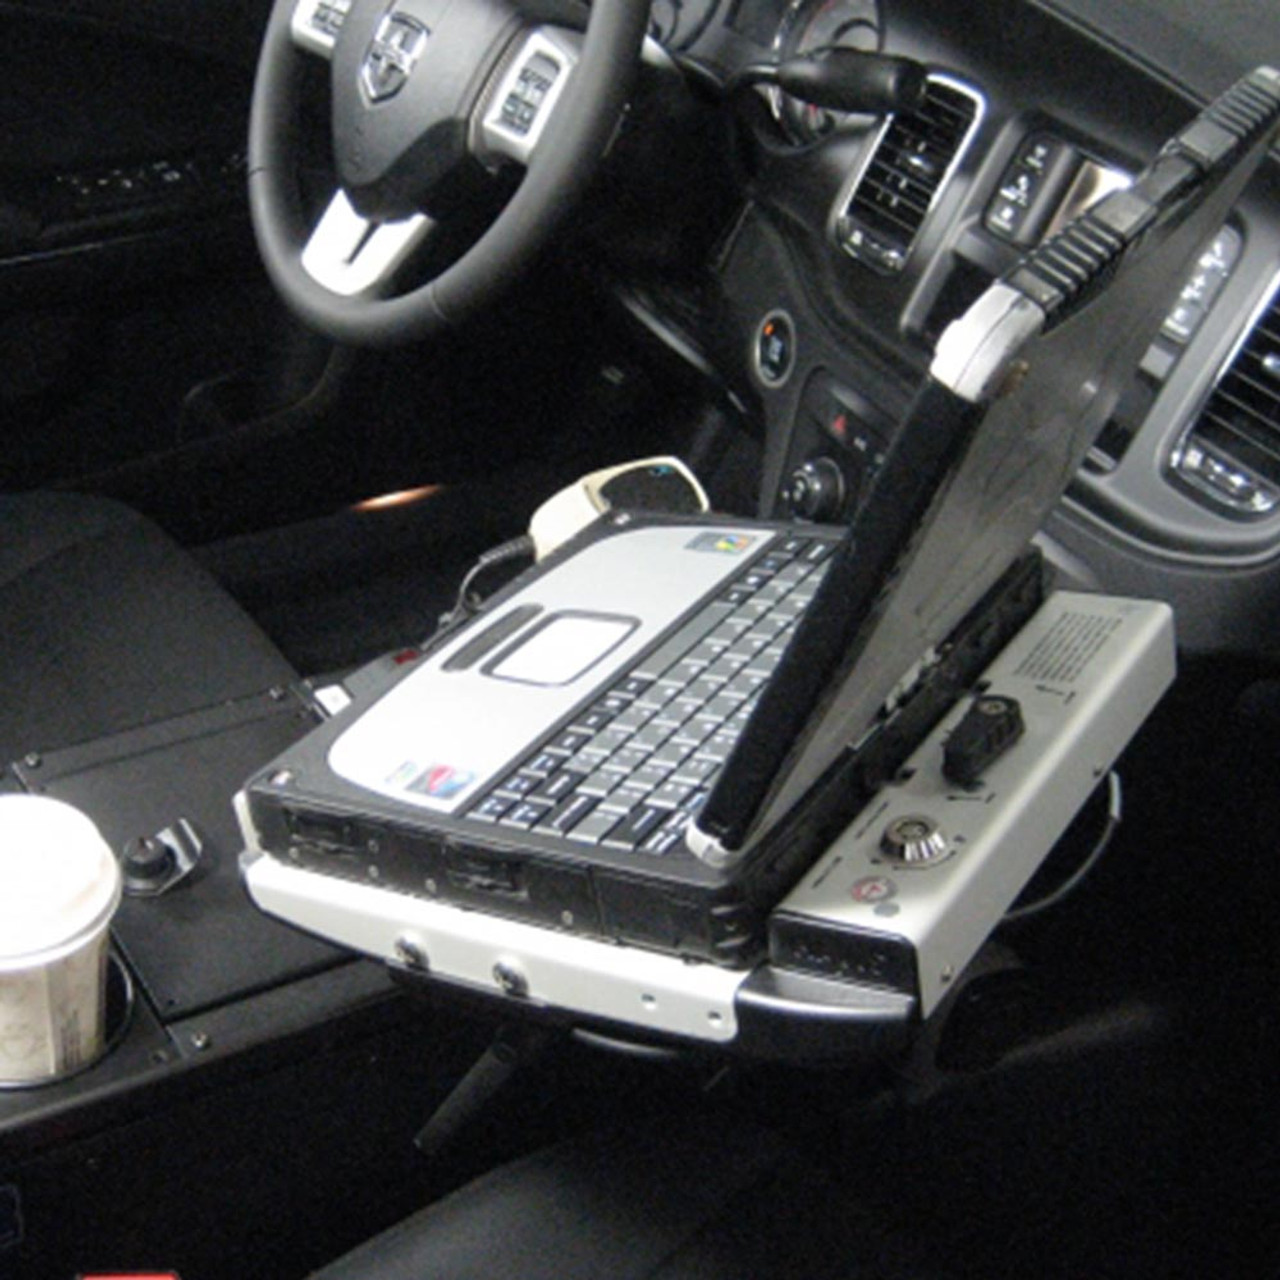 Charger Police Console 25 Inch by Havis 2011-Present, provides additional depth for mounting equipment